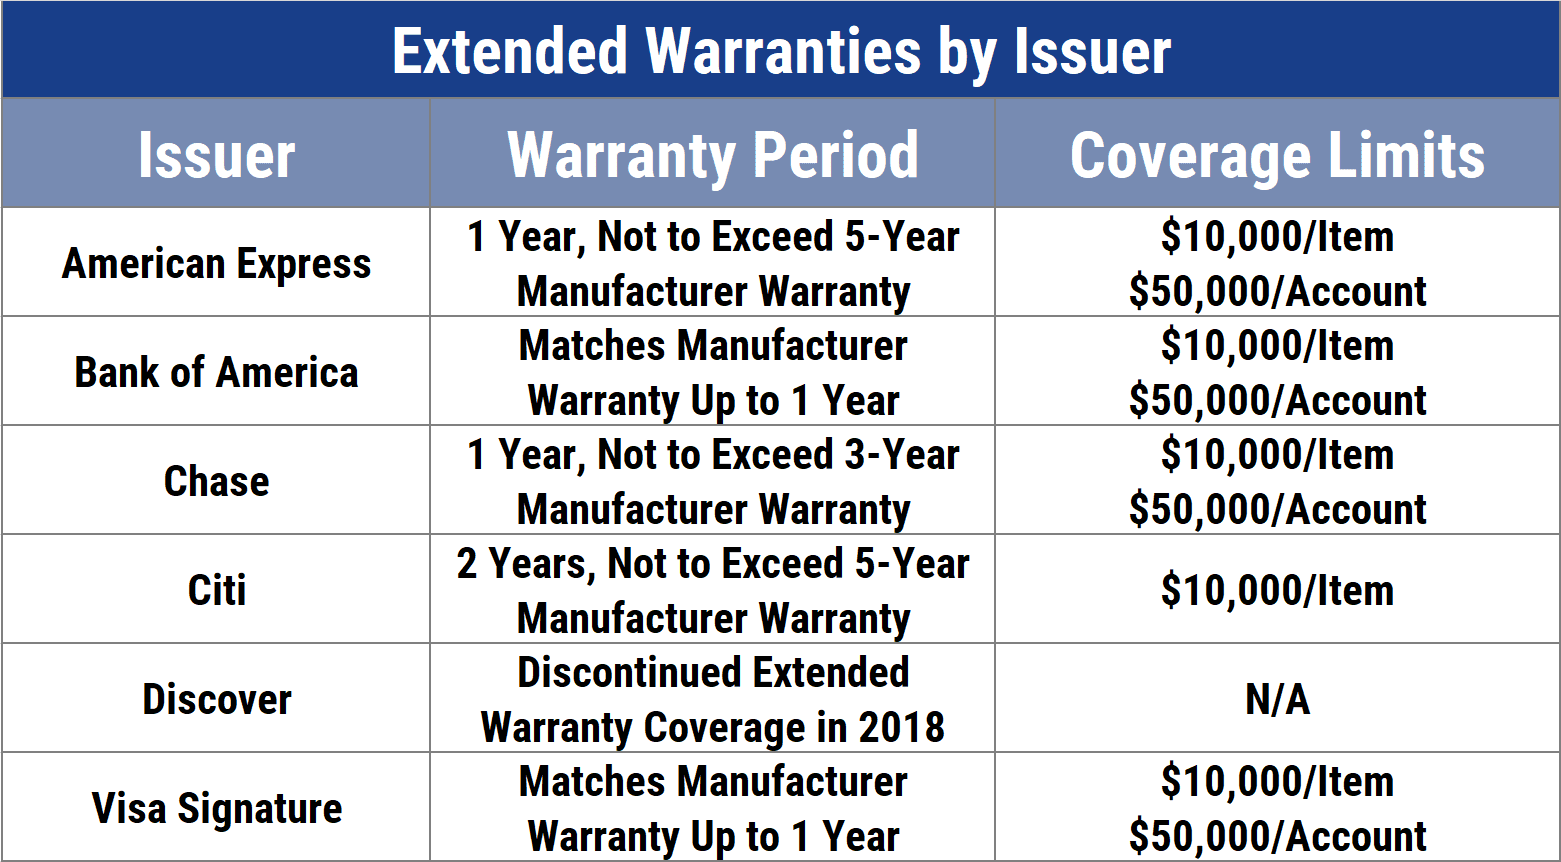 Extended Warranties by Issuer